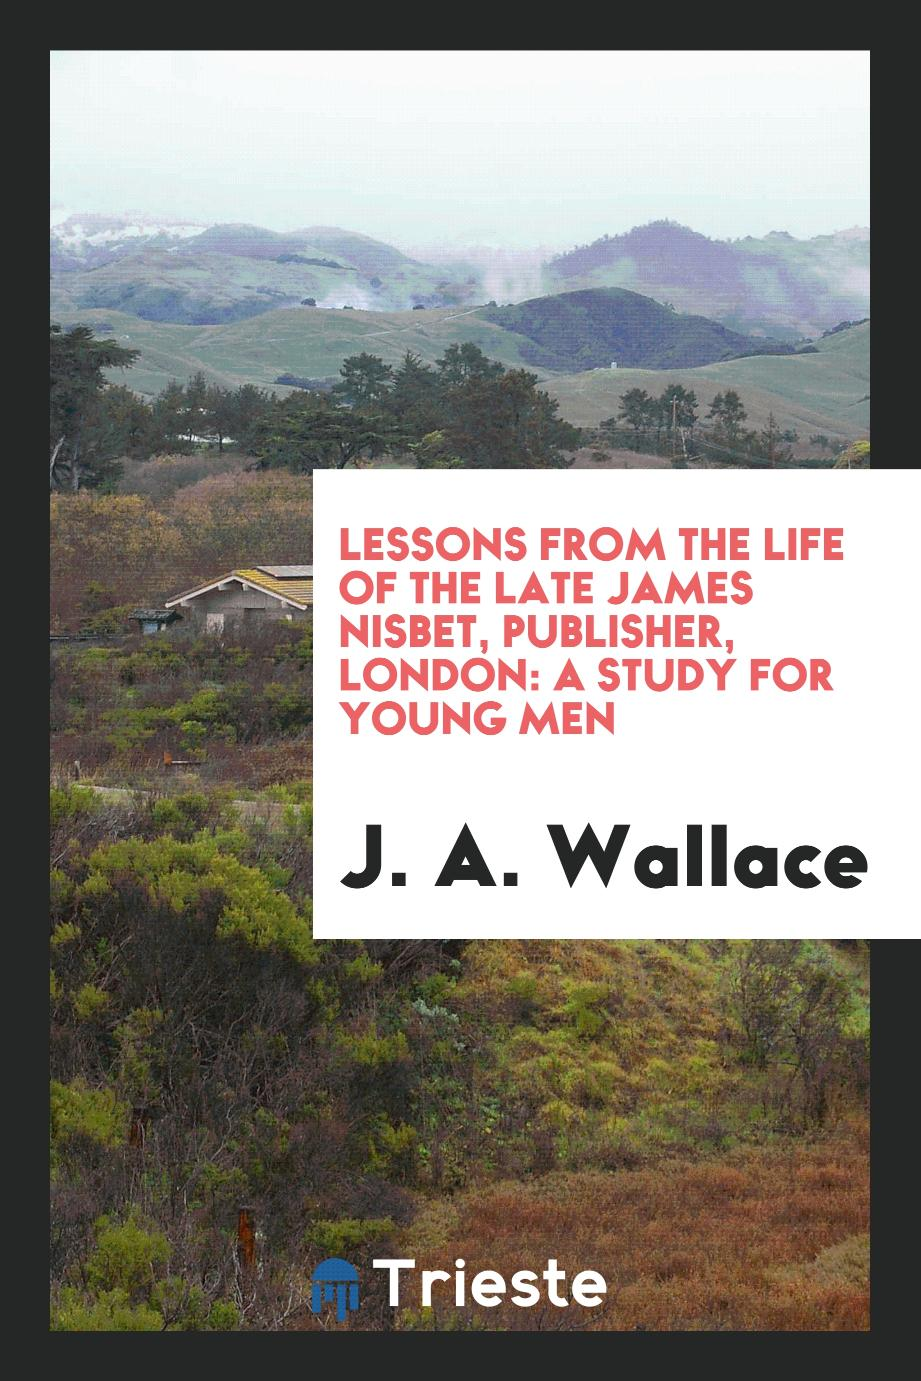 Lessons from the Life of the Late James Nisbet, Publisher, London: A Study for Young Men